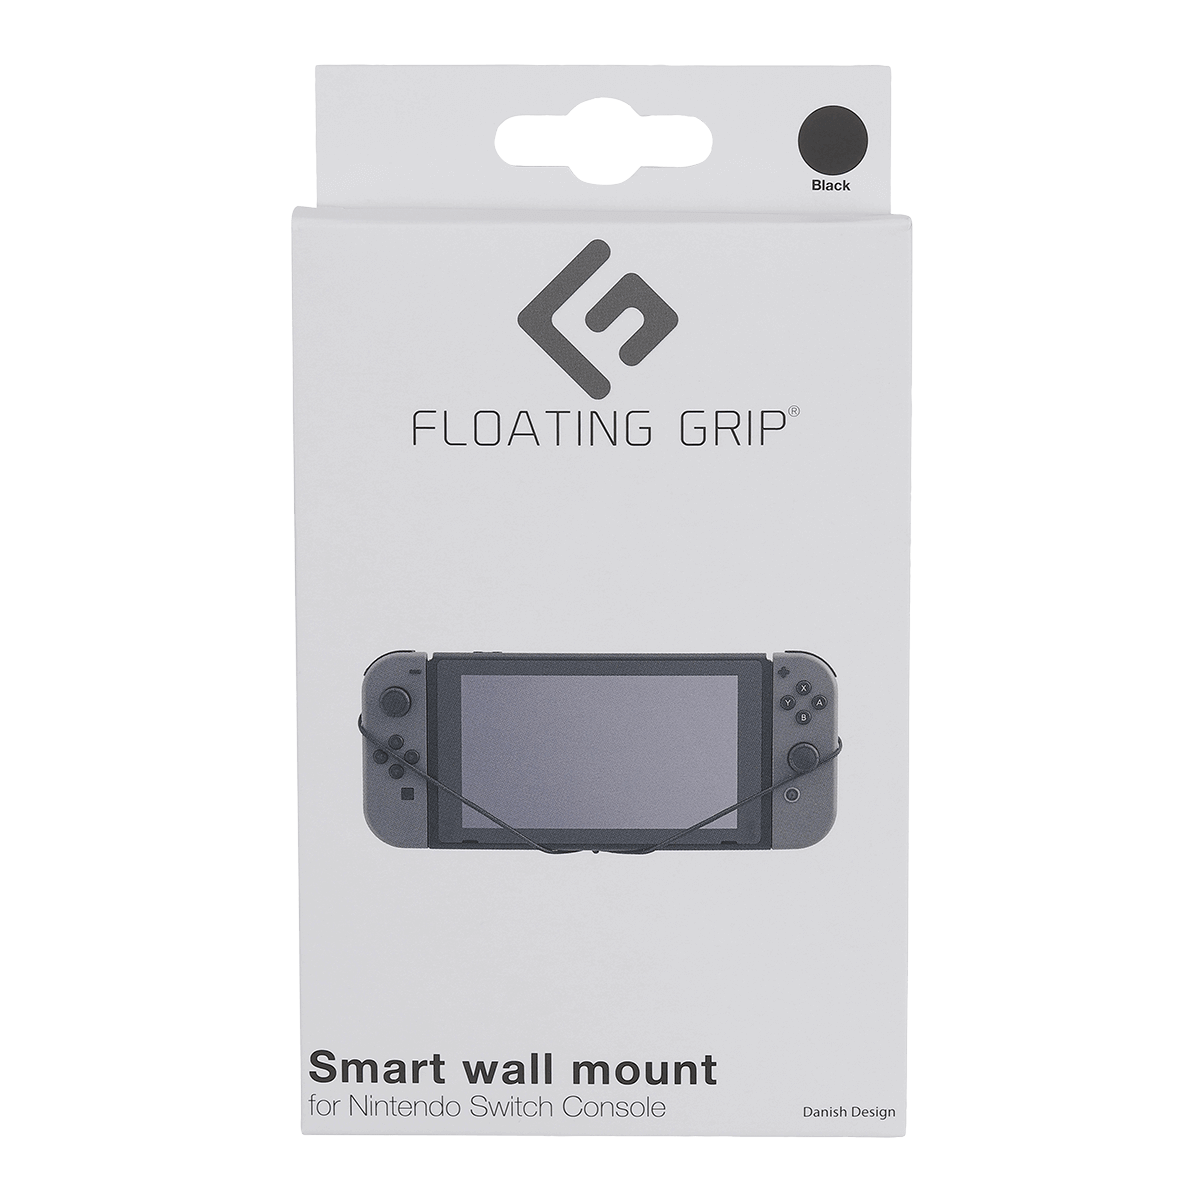 Nintendo Switch Console wall mount by FLOATING GRIP®, Black